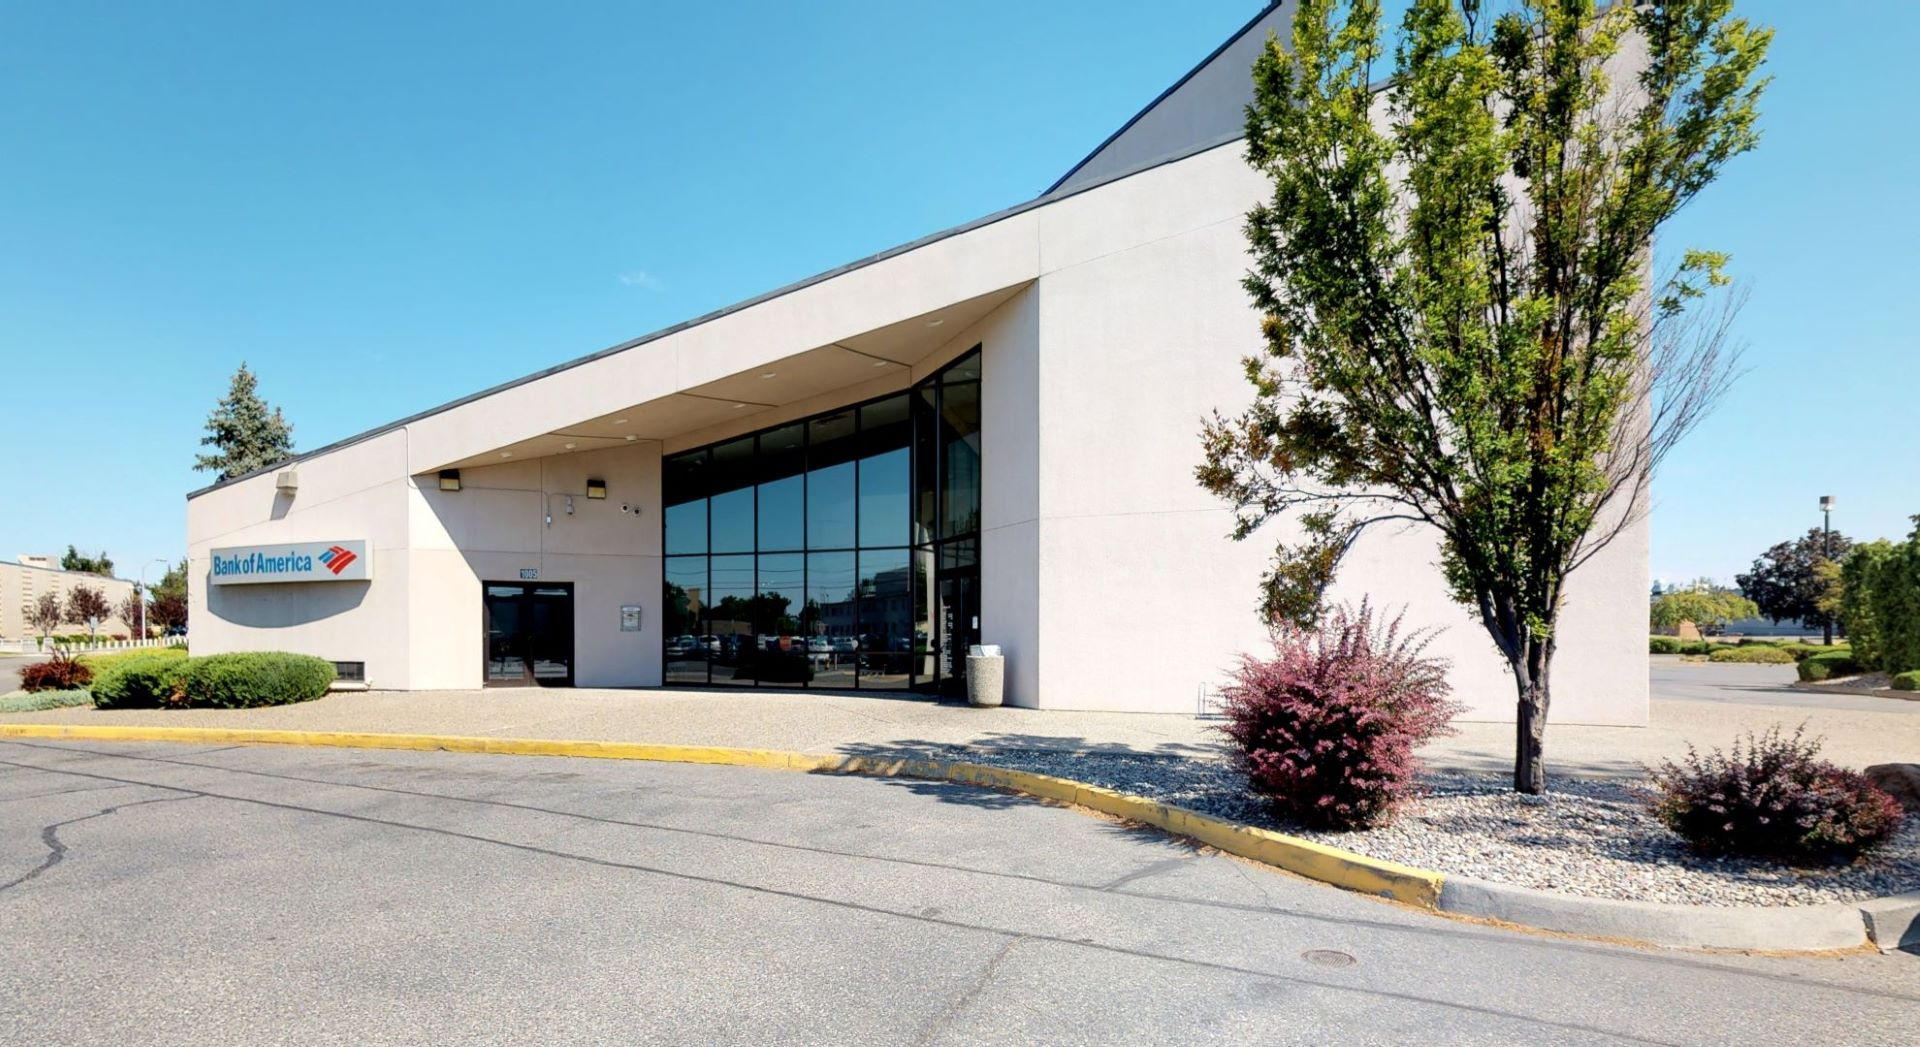 Bank of America financial center with walk-up ATM | 1007 Knight St, Richland, WA 99352